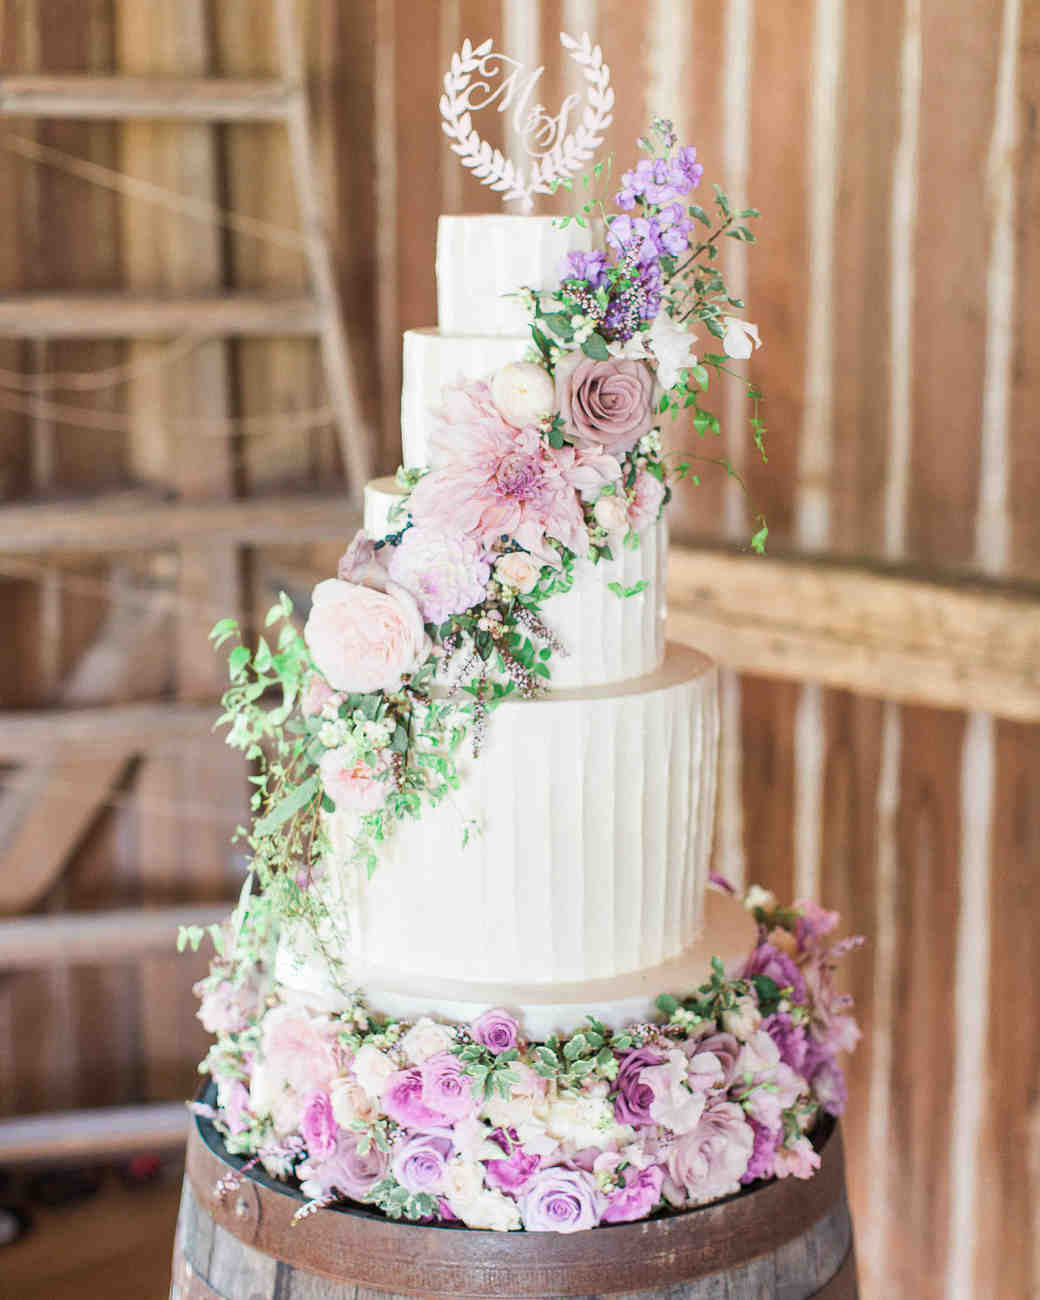 White Wedding Cake with Purple and White Flowers